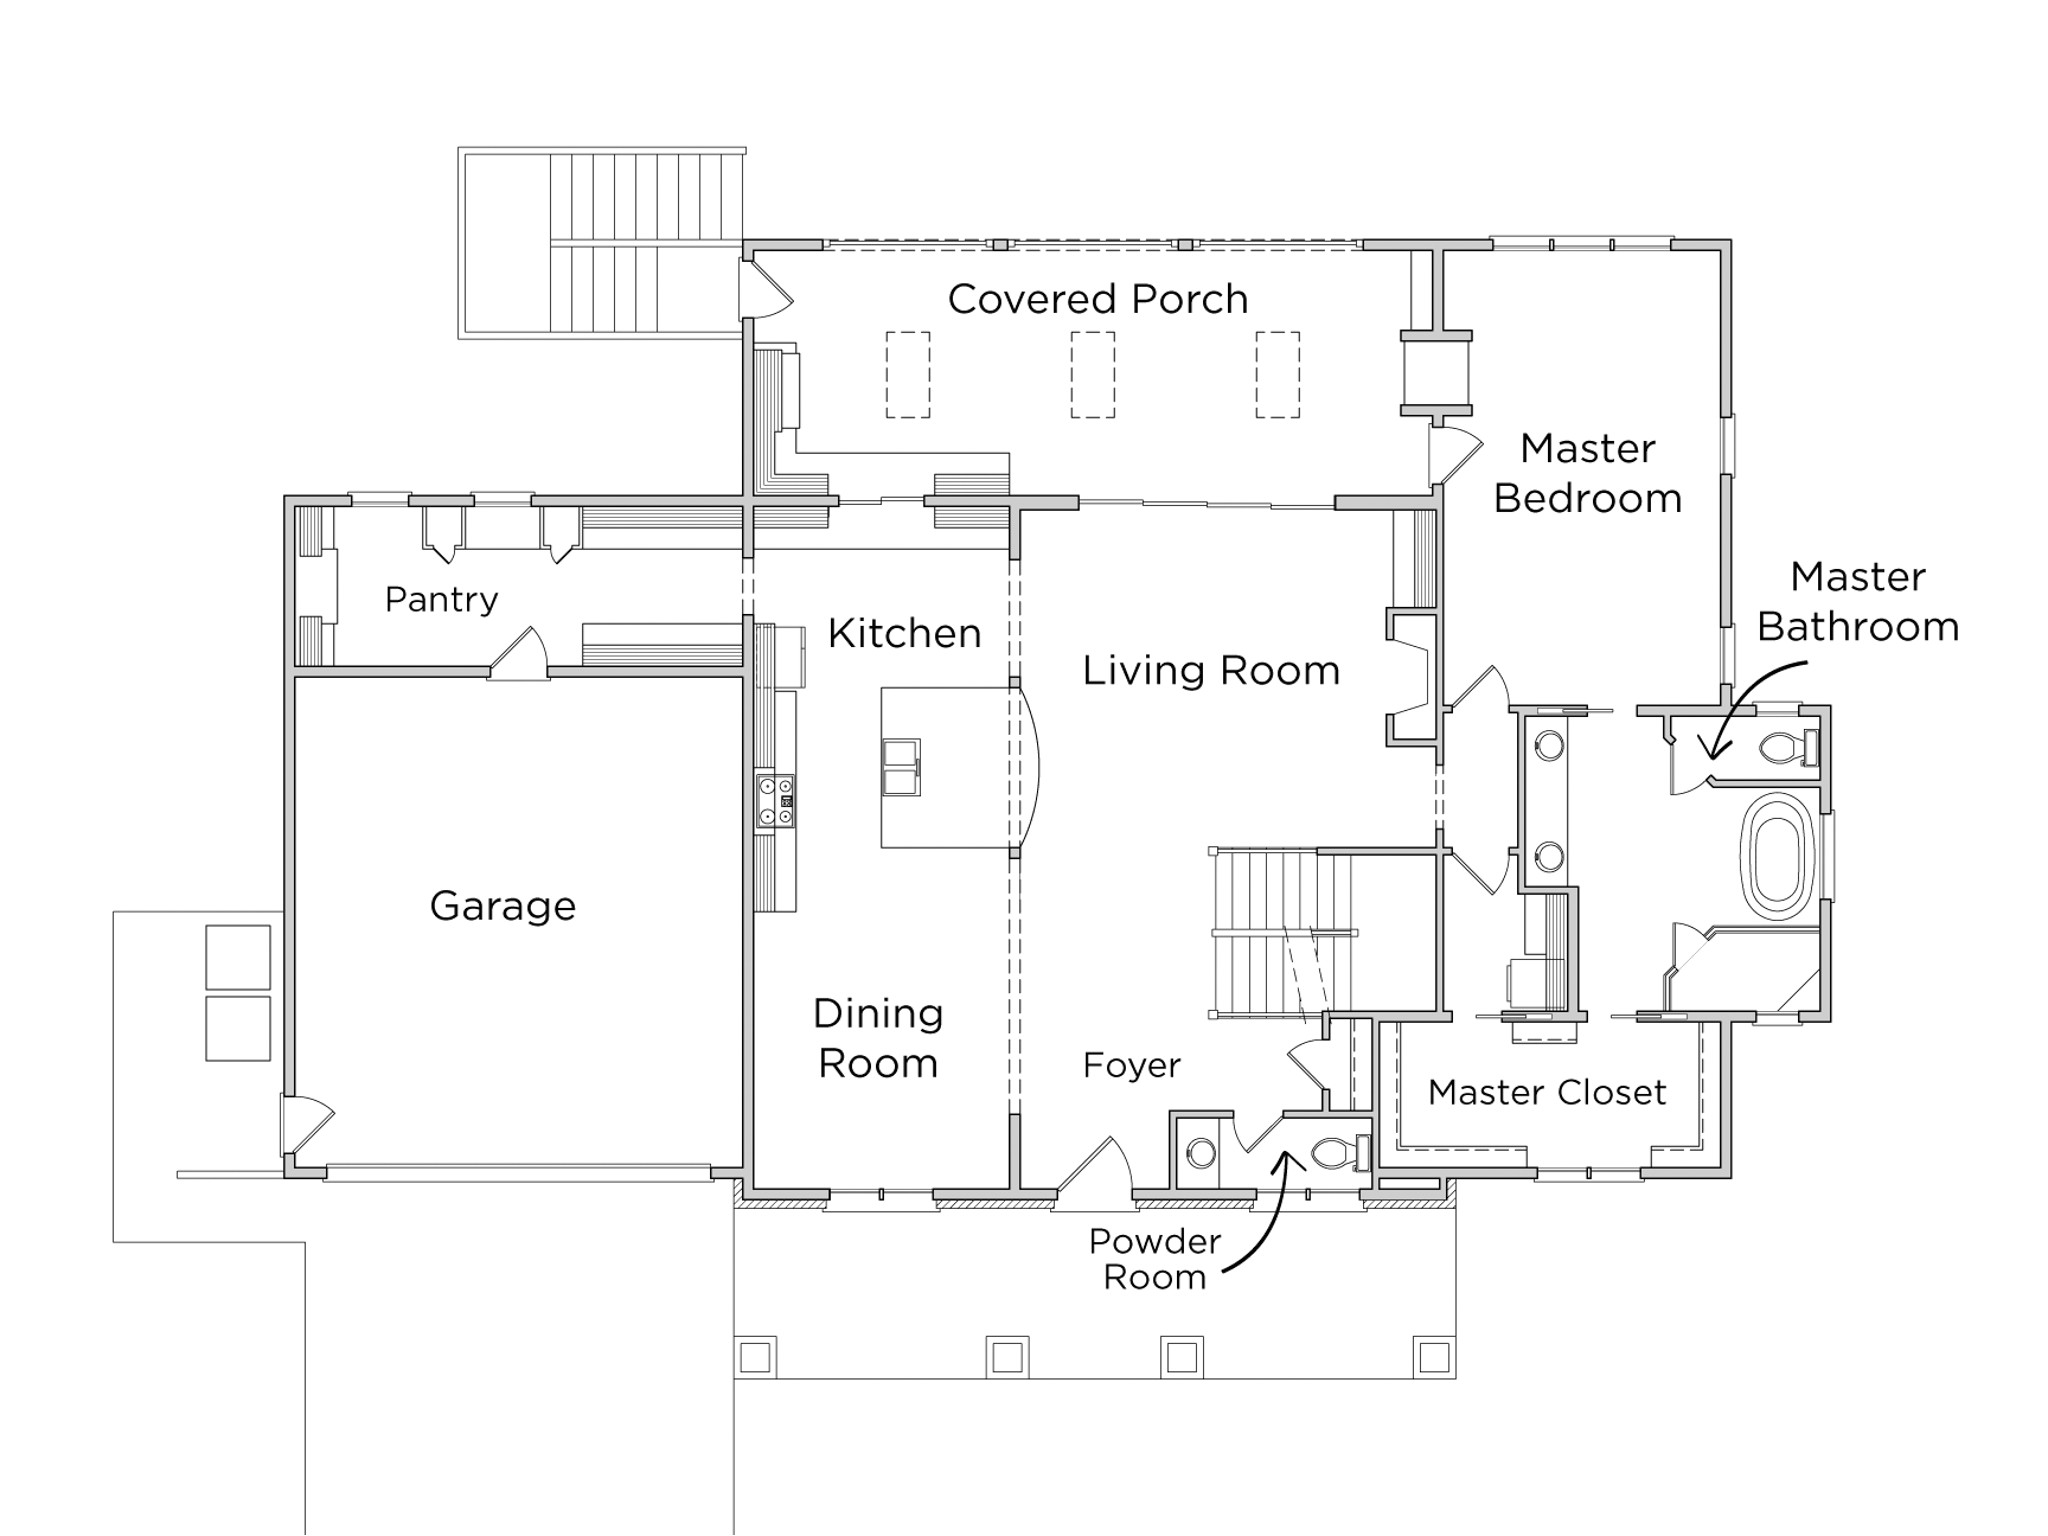 Hgtv Smart Home14 Floor Plan Hgtv Smart Home 2016 9 Ways to Prepare for the Giveaway